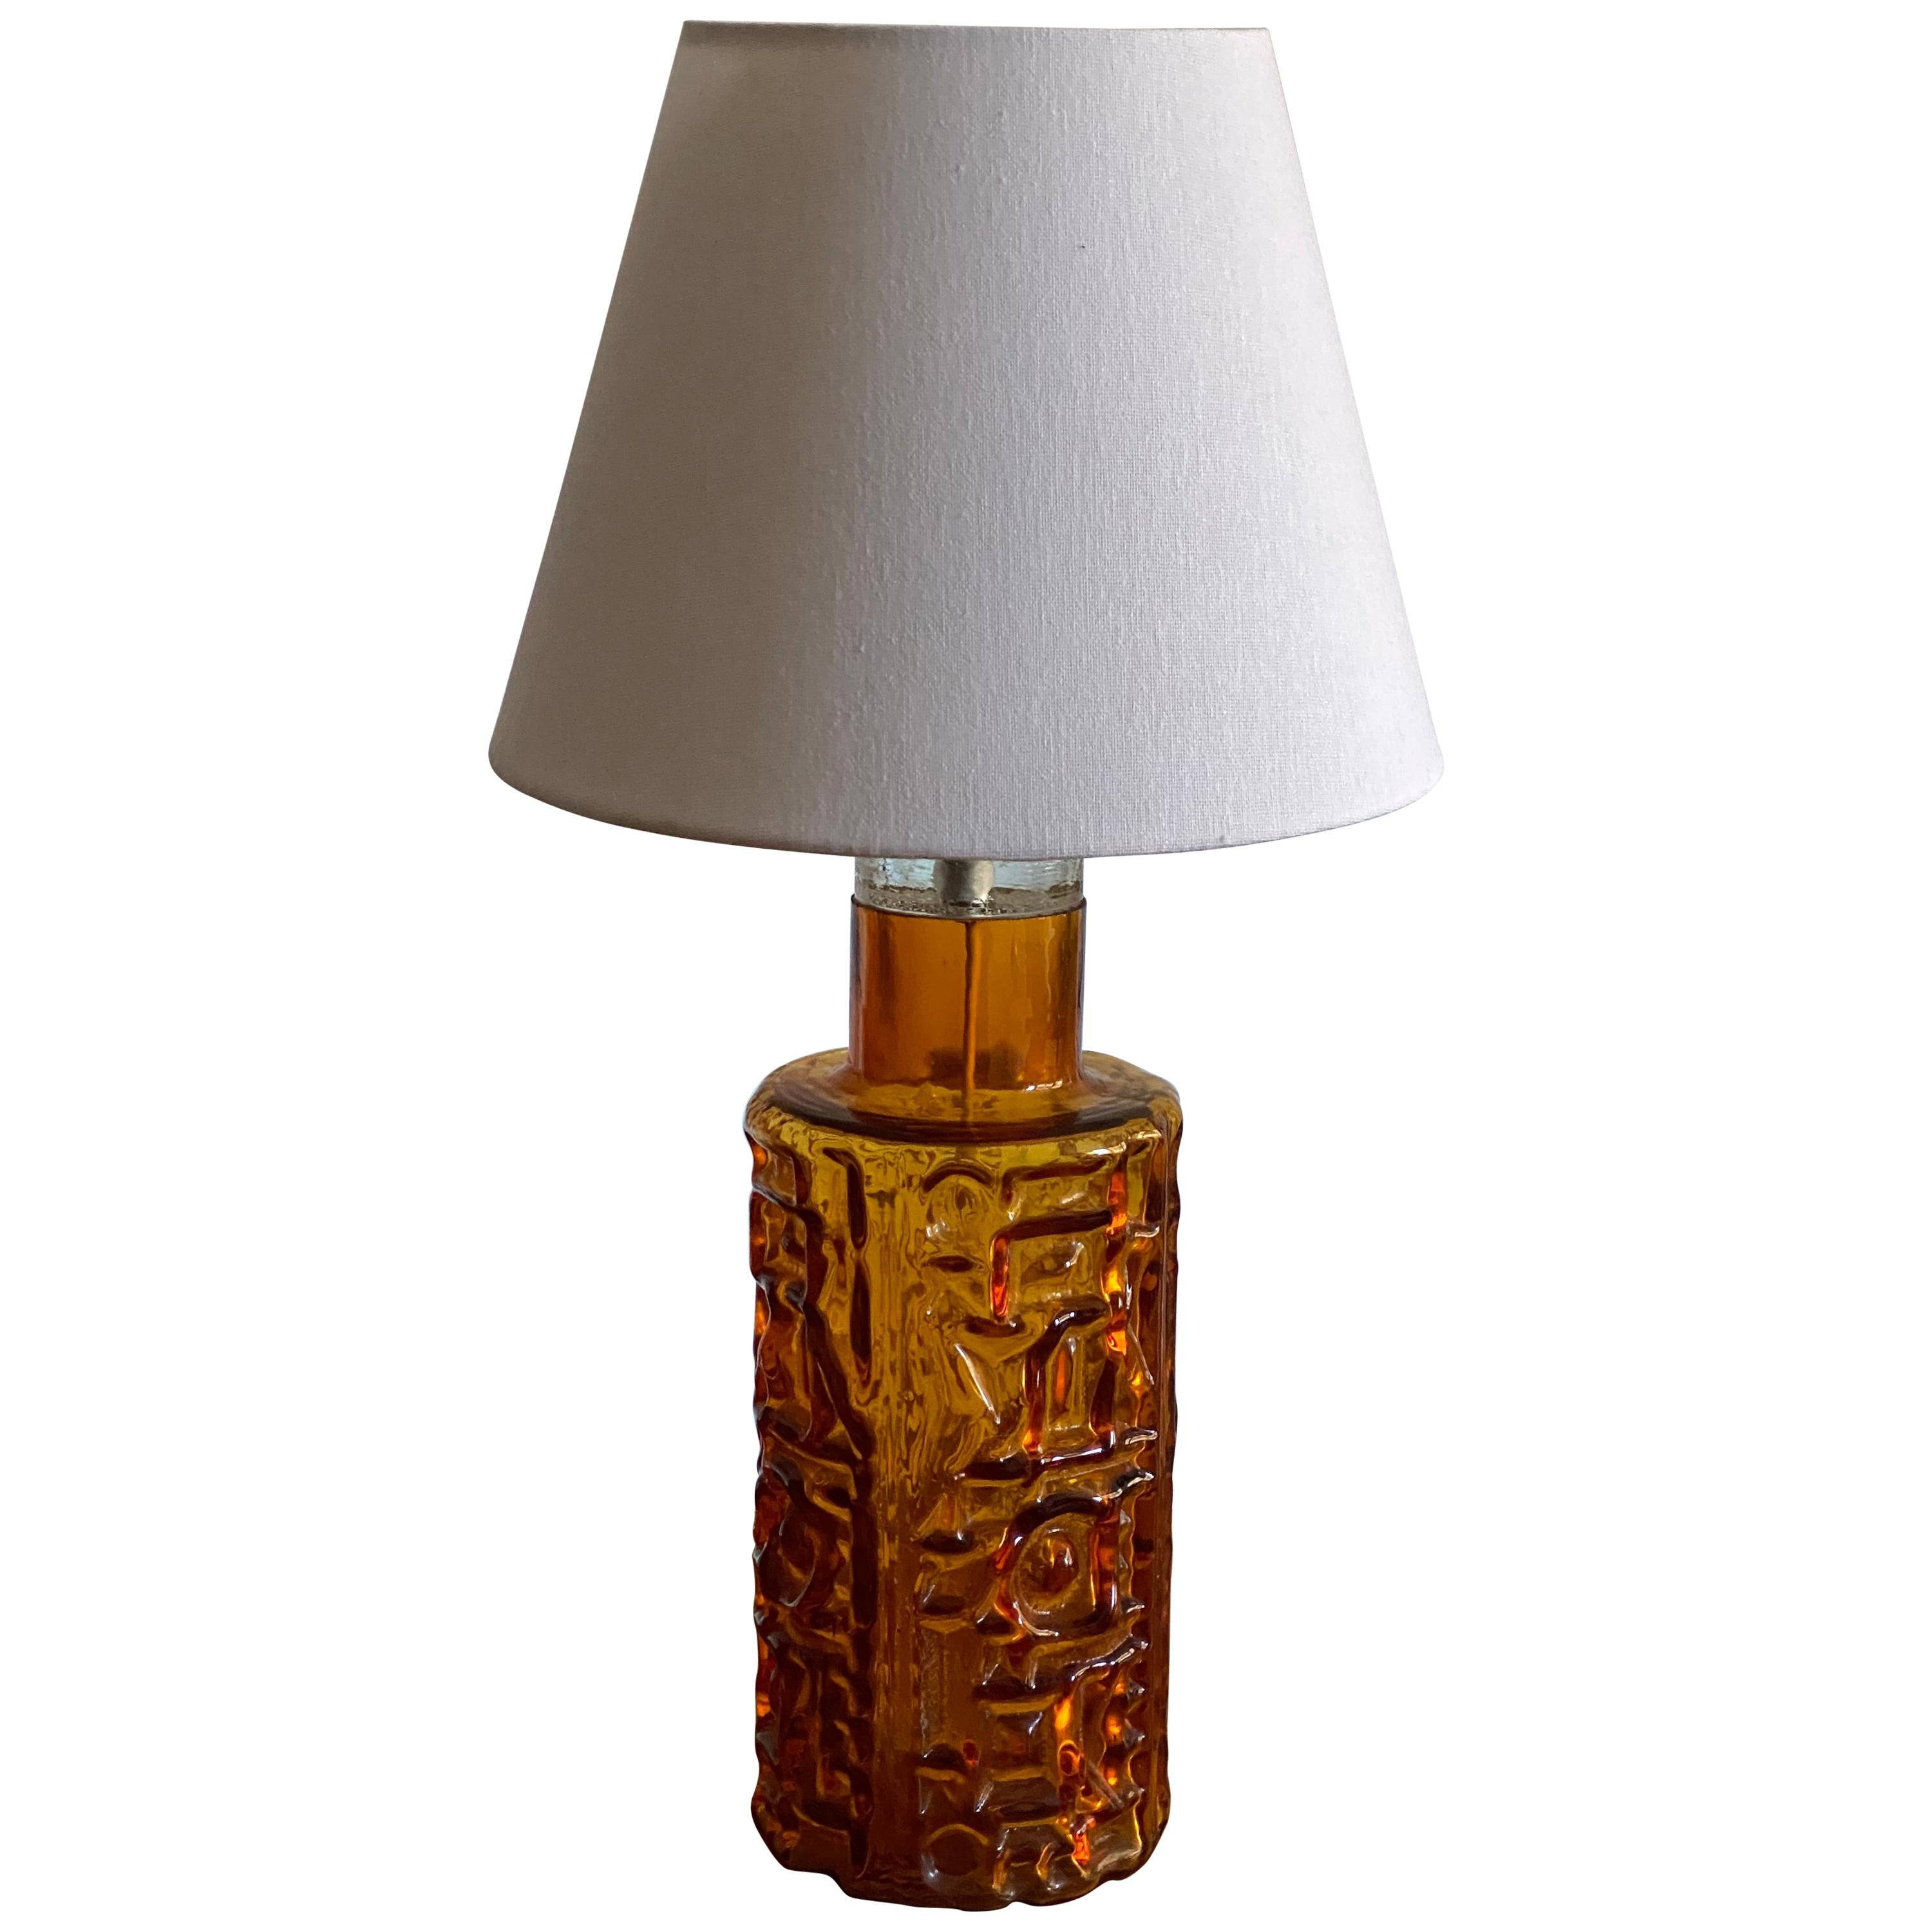 Swedish Designer, Organic Table Lamp, Orange Glass, Sweden, 1950s